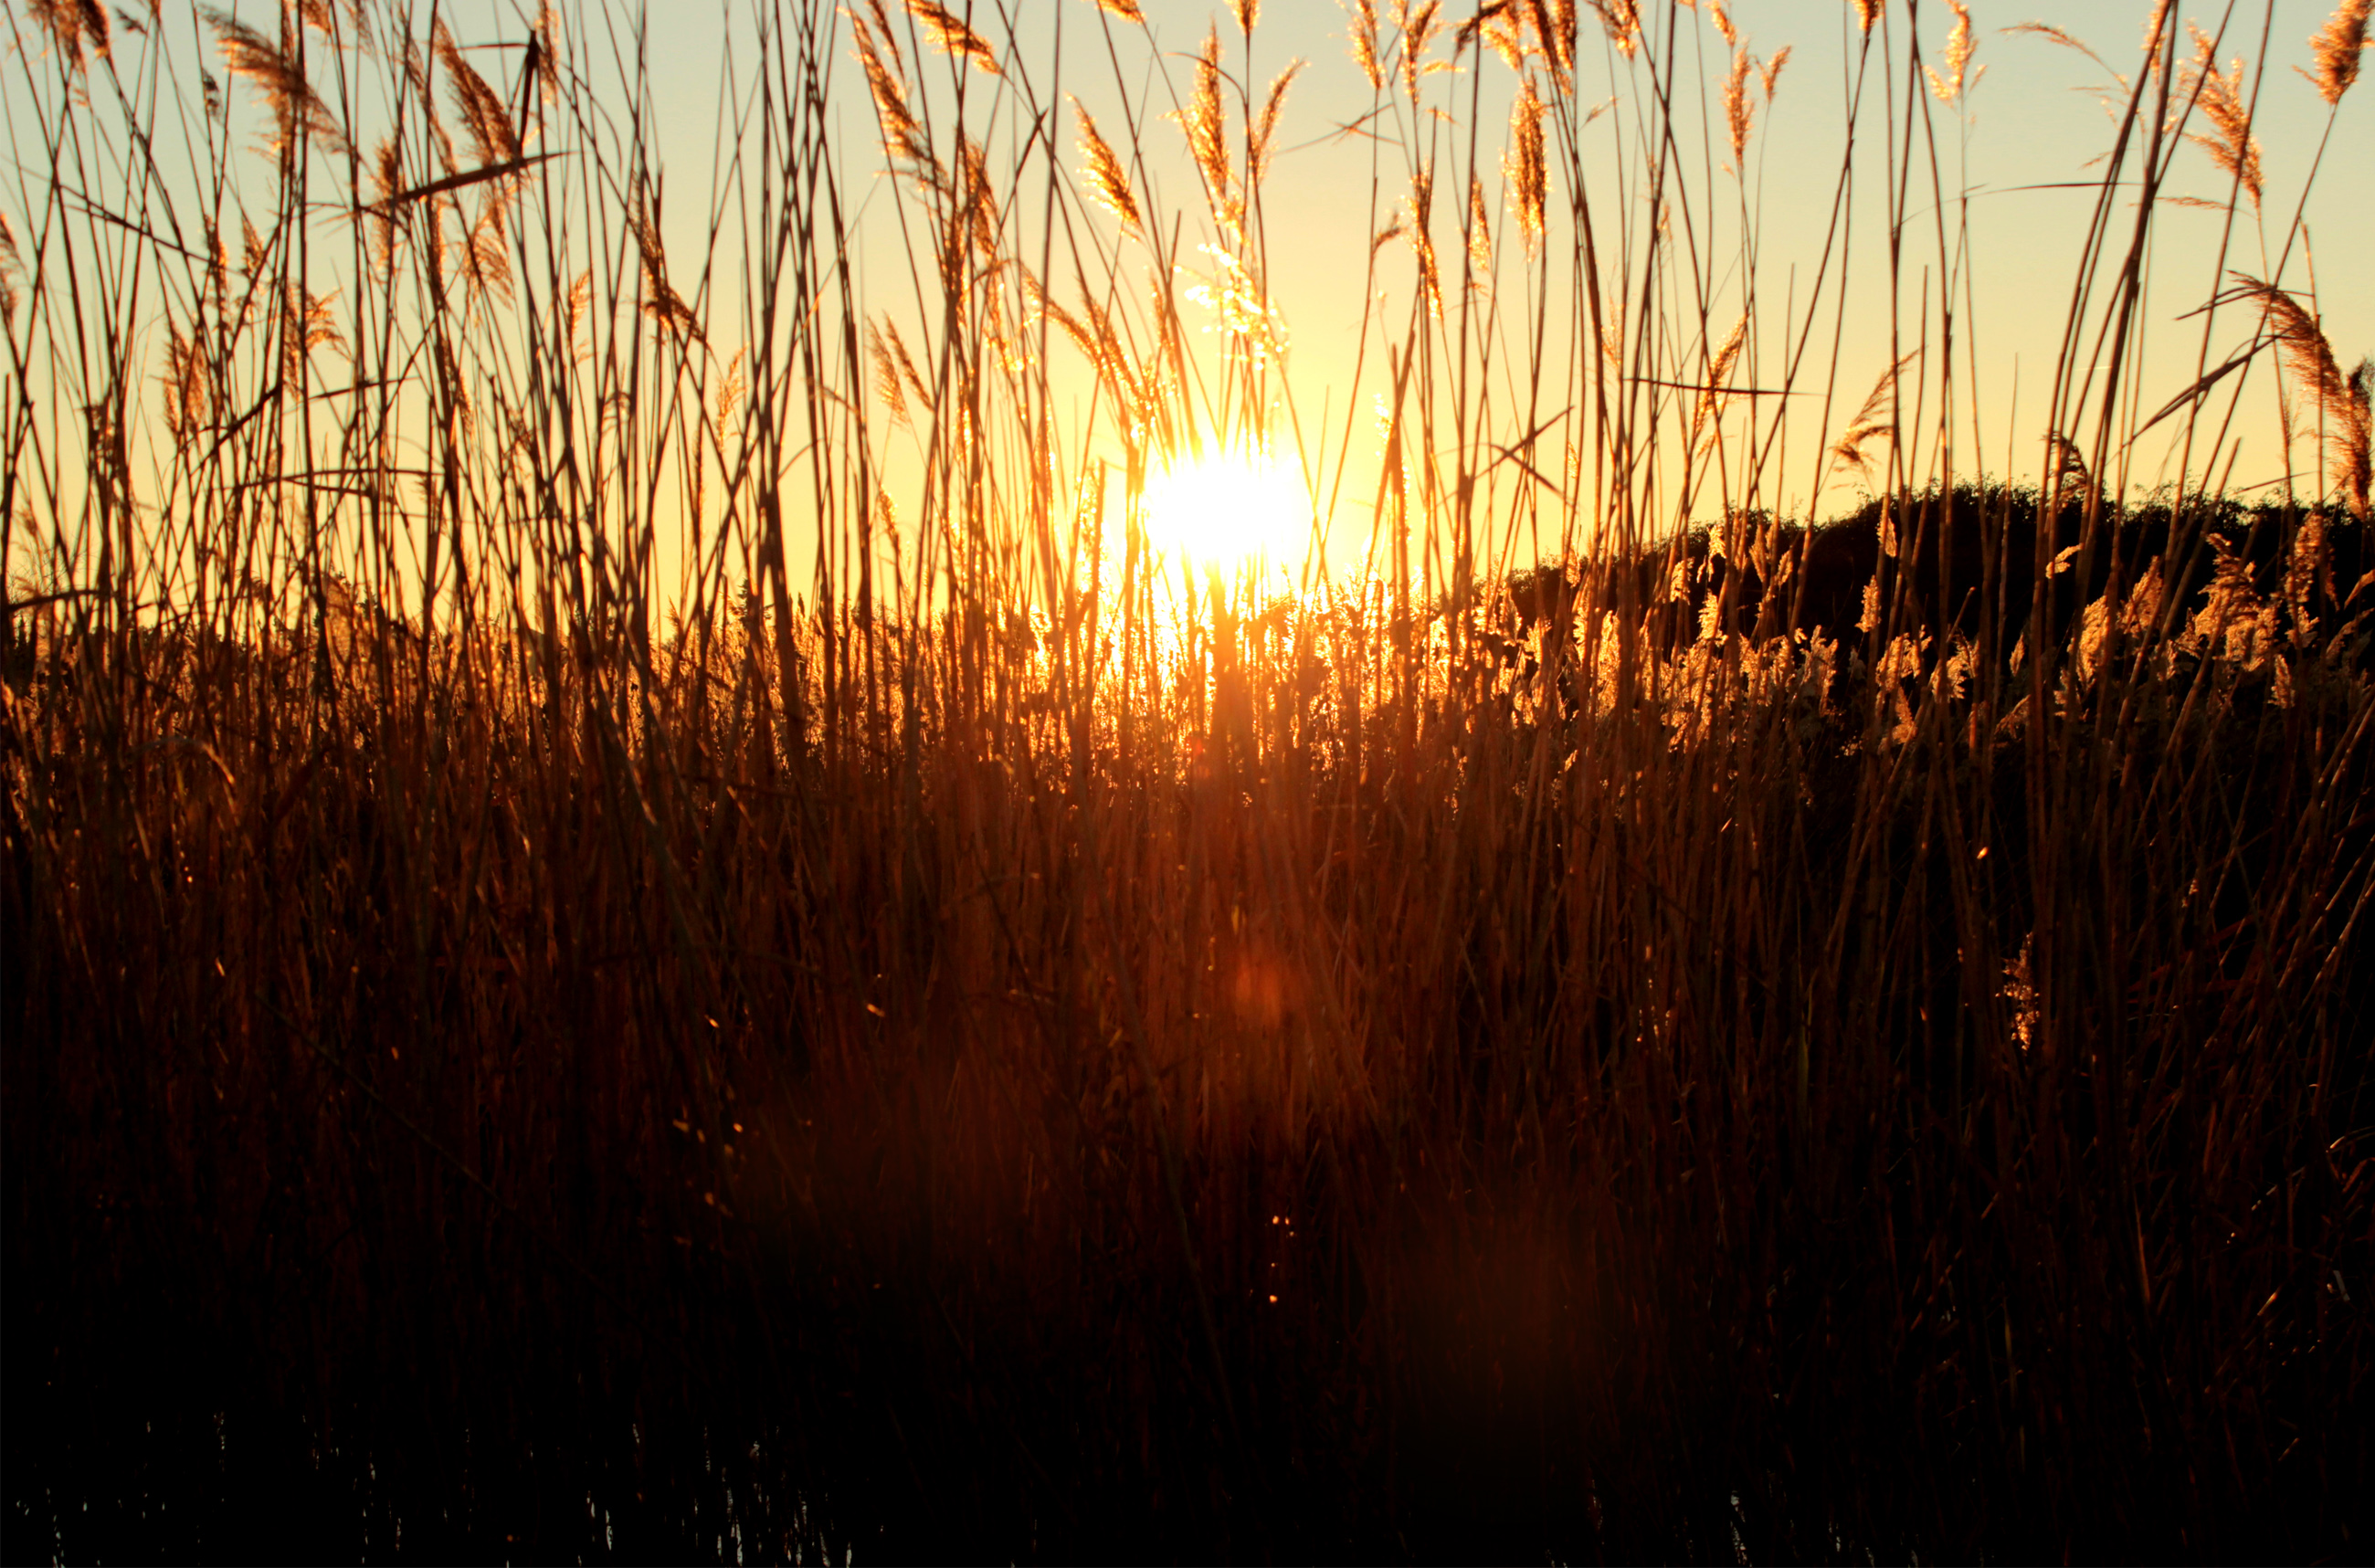 Sunset through grass, Agriculture, Summer, Outdoor, Plant, HQ Photo